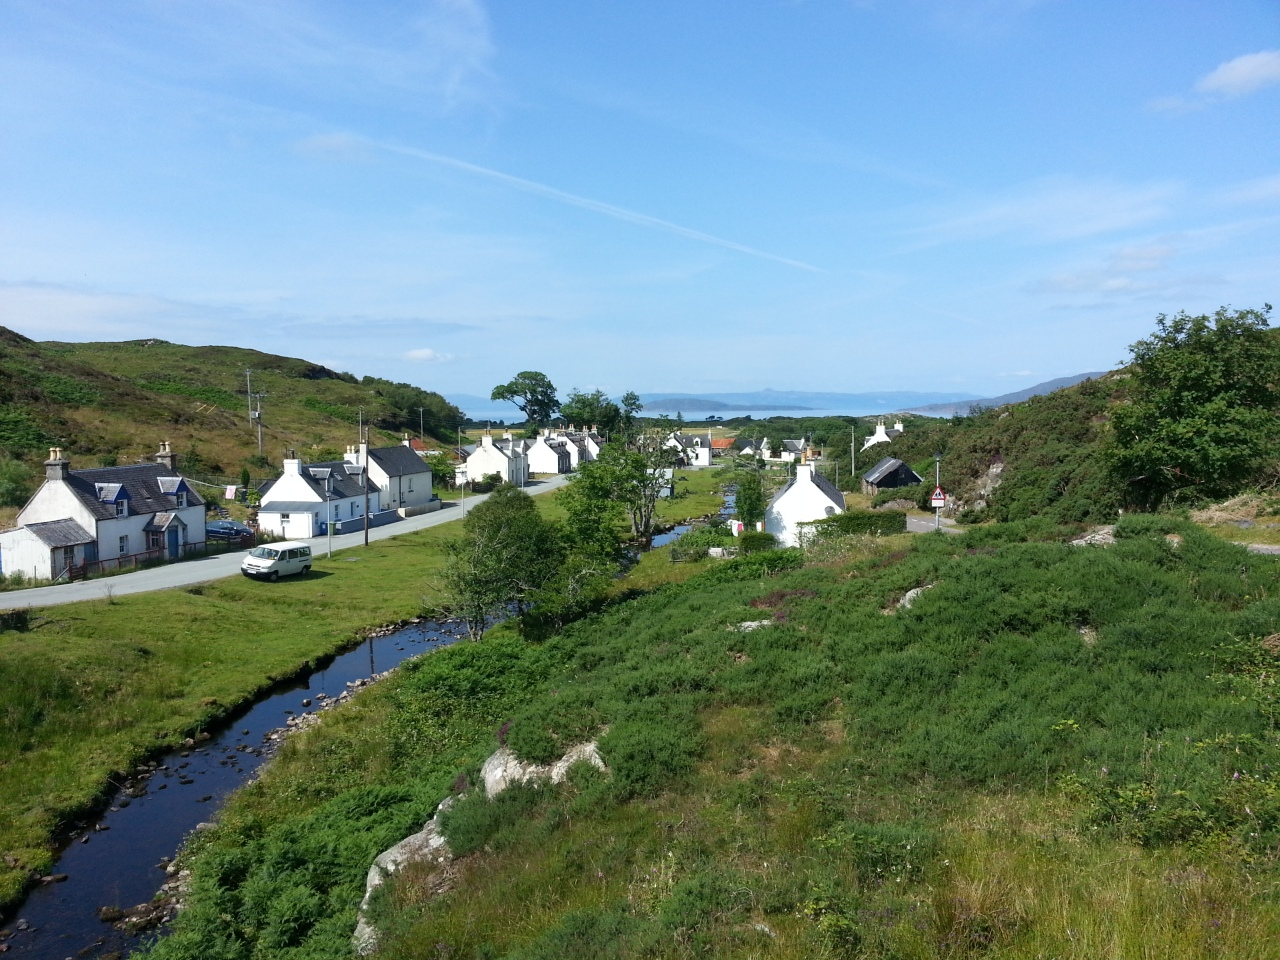 I rode many miles along the sea coast and along the many lochs of west Scotland. Passing through picturesque villages and small towns all the way through the Highlands and to the north west point a